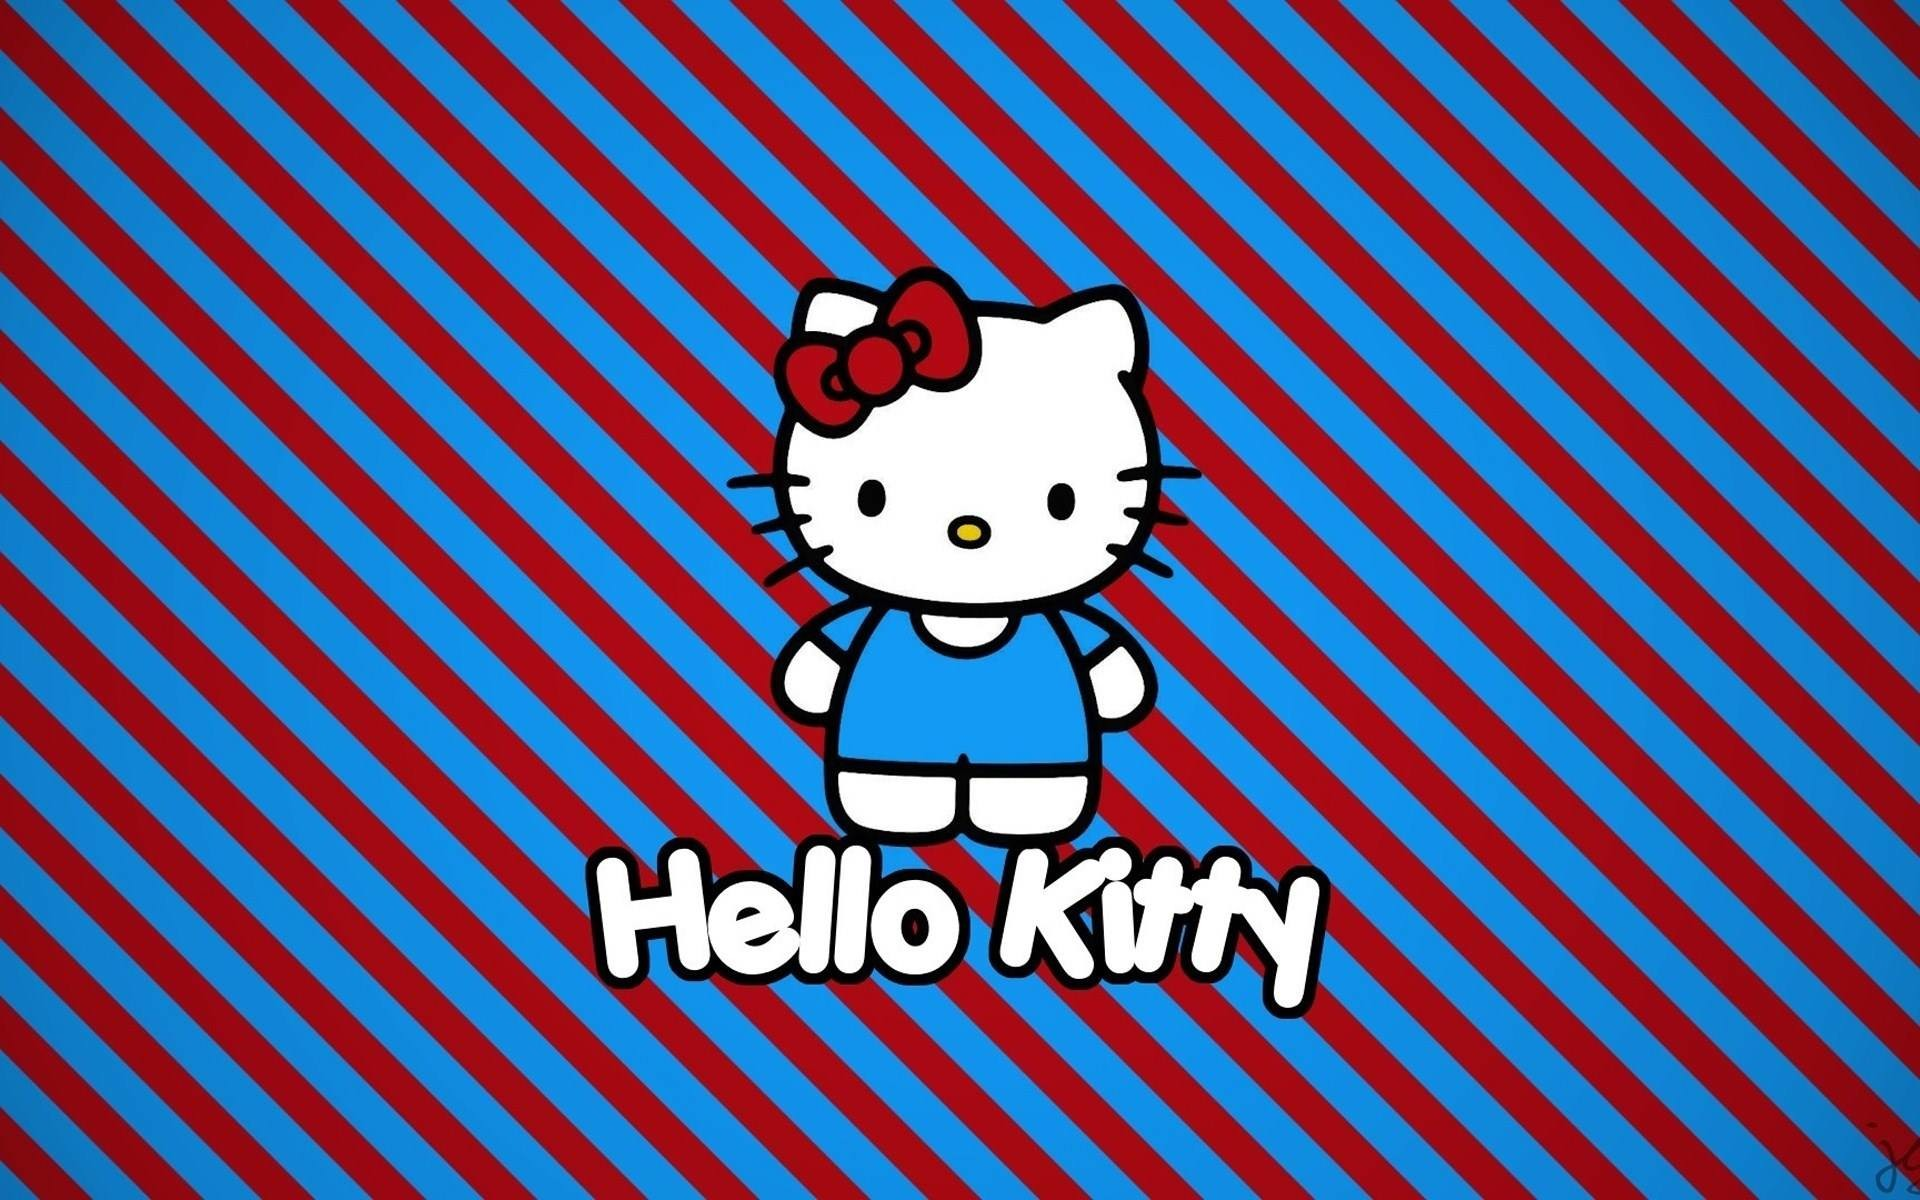 Who android wallpaper pictures of snow free hello kitty wallpaper - 1920x1200 Hello Kitty Cartoon Background